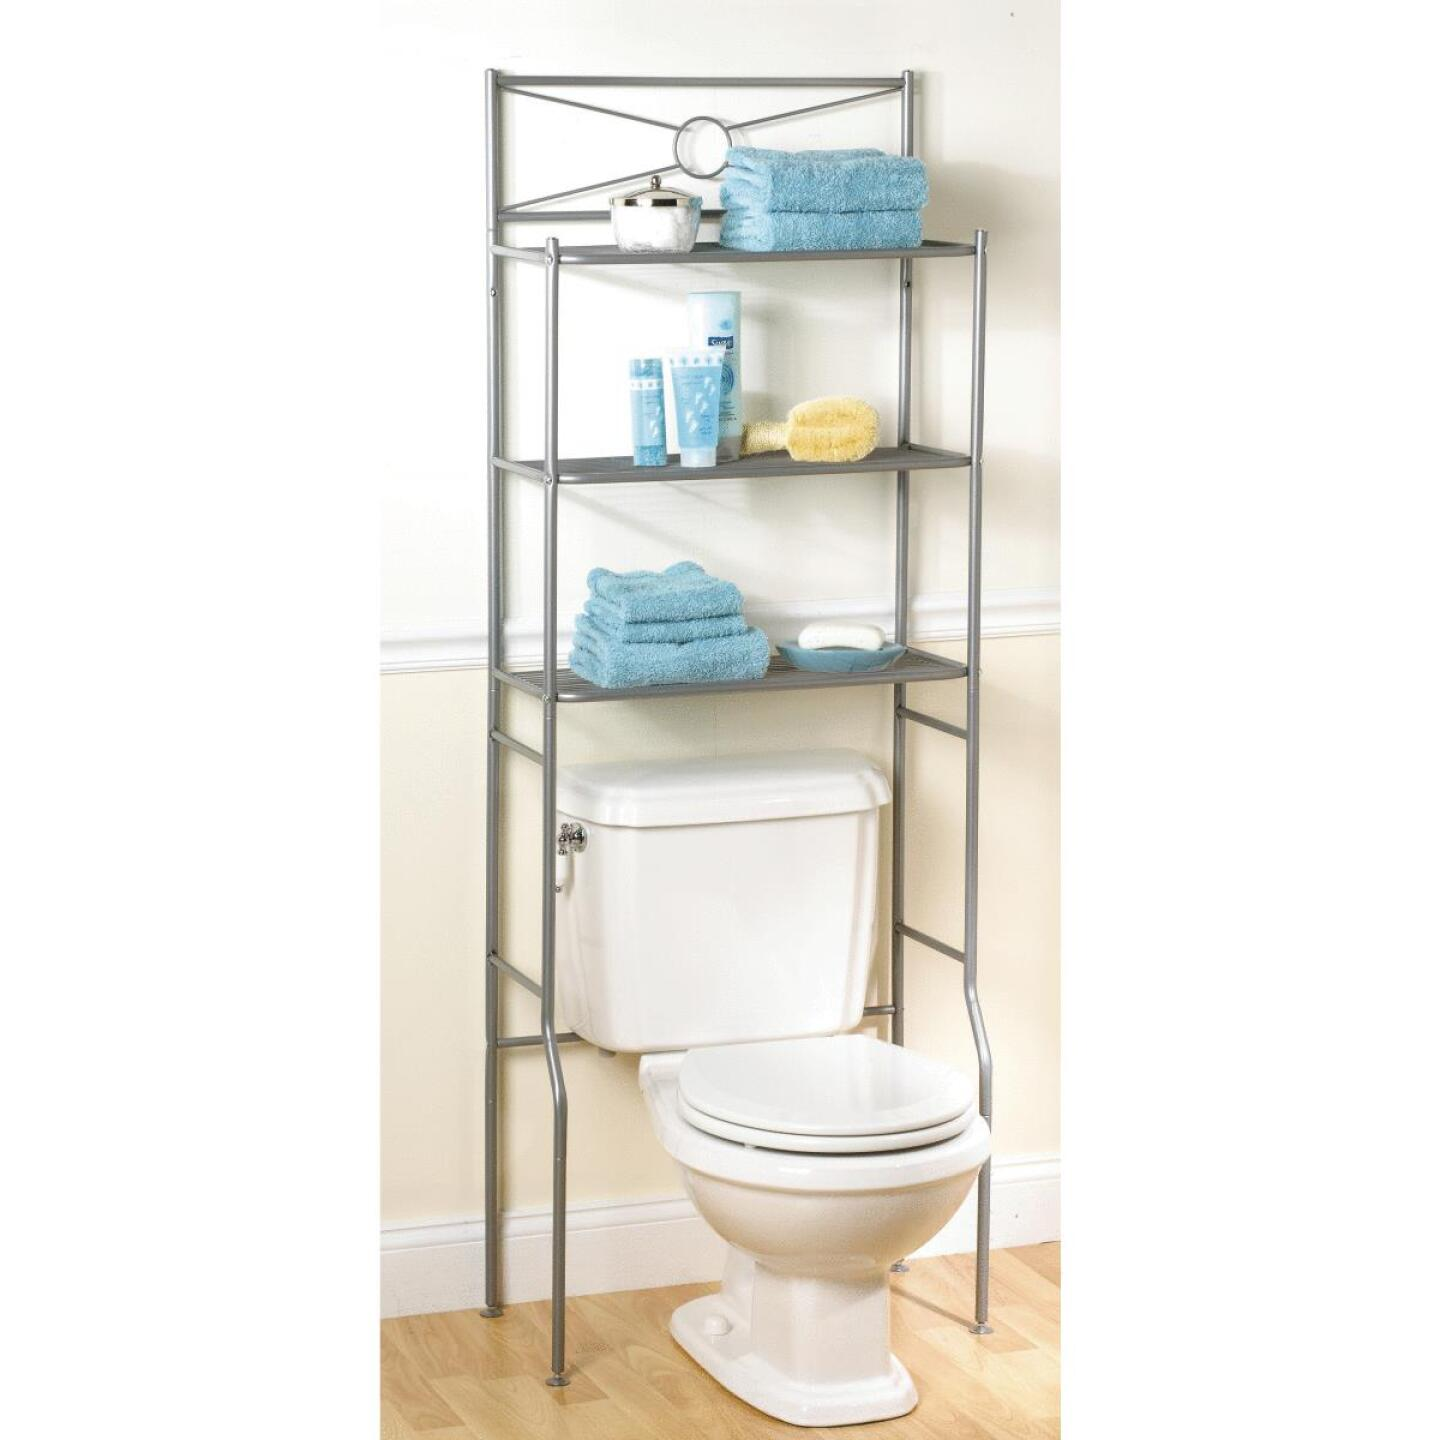 Zenith Spacesaver Satin Nickel Over-the-Toilet Shelf Cabinet, 3 Shelf Image 1